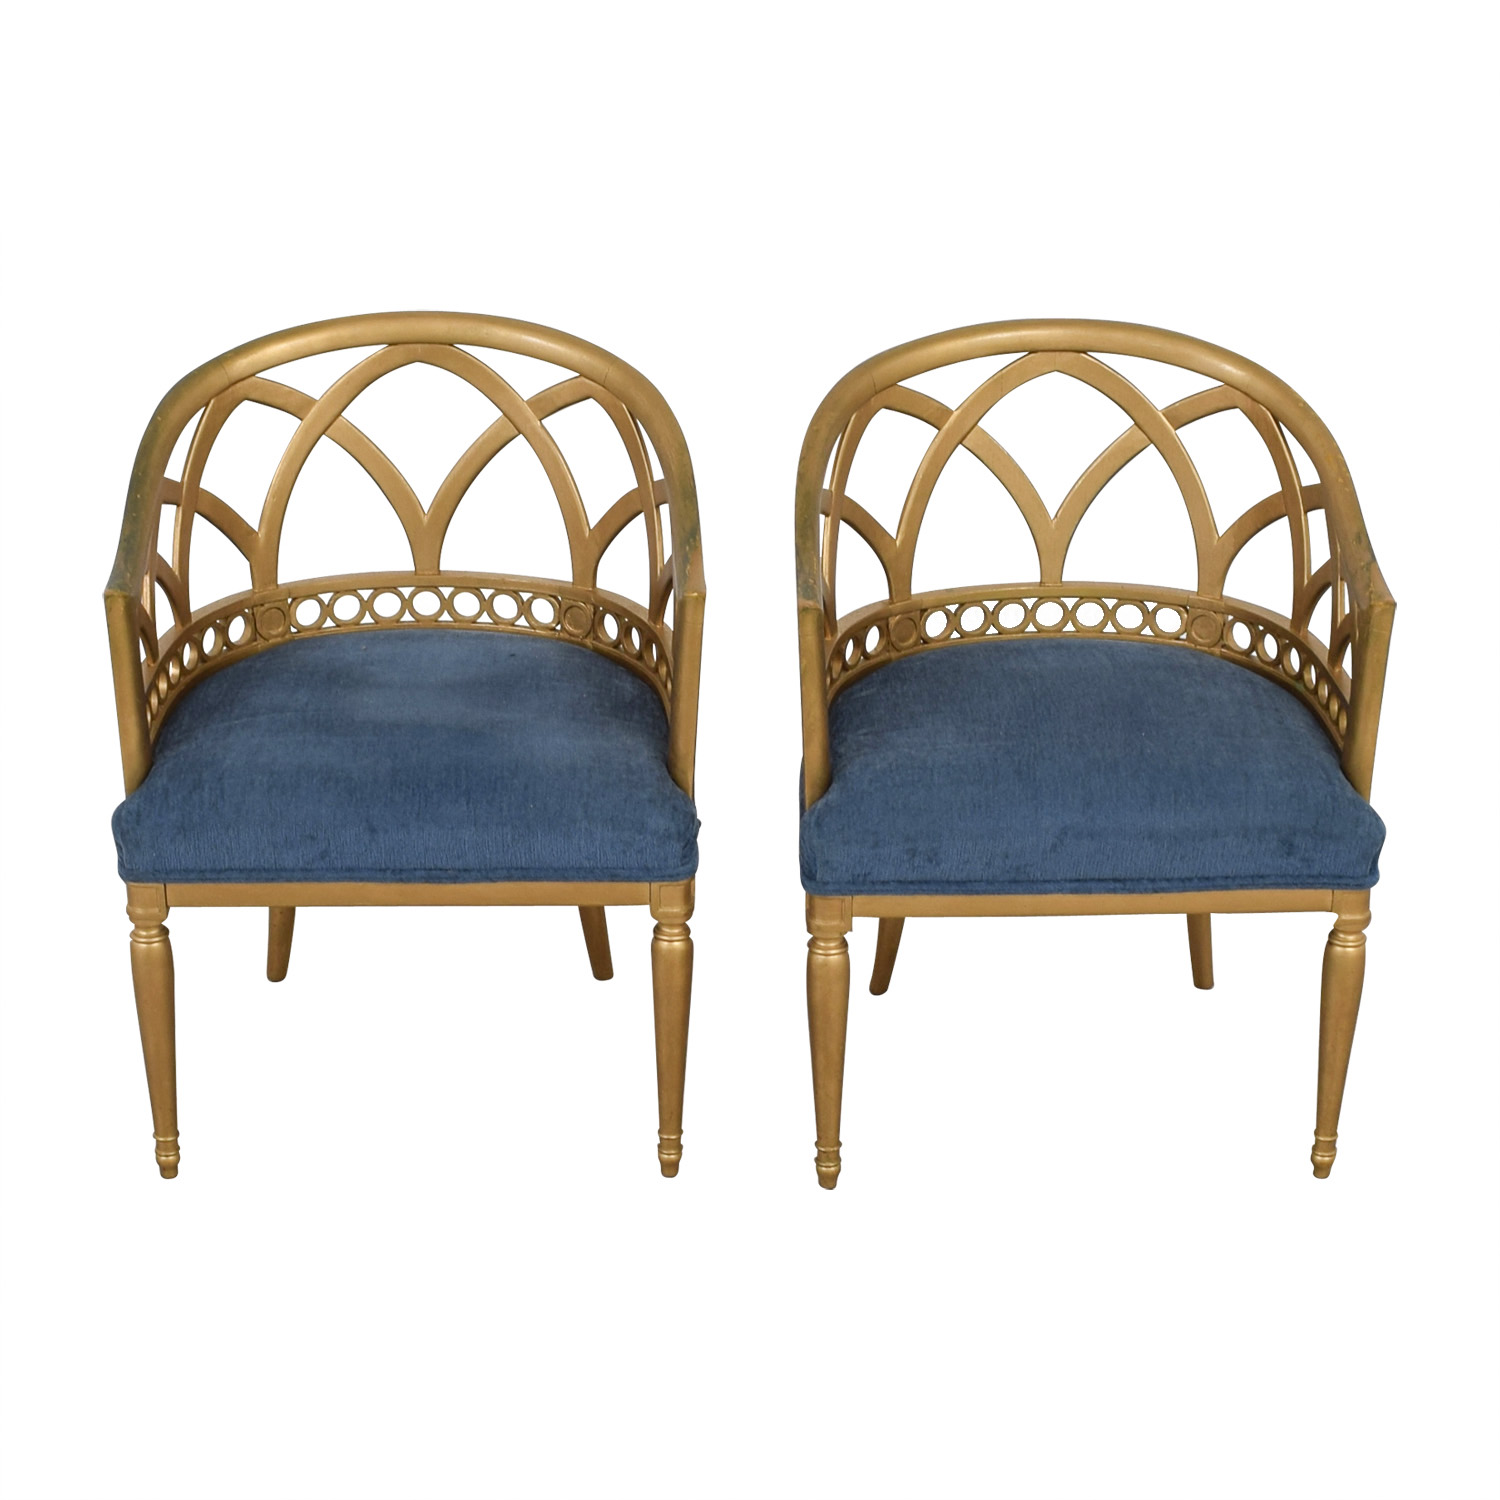 Gold Accent Chairs Chairs Used Chairs For Sale